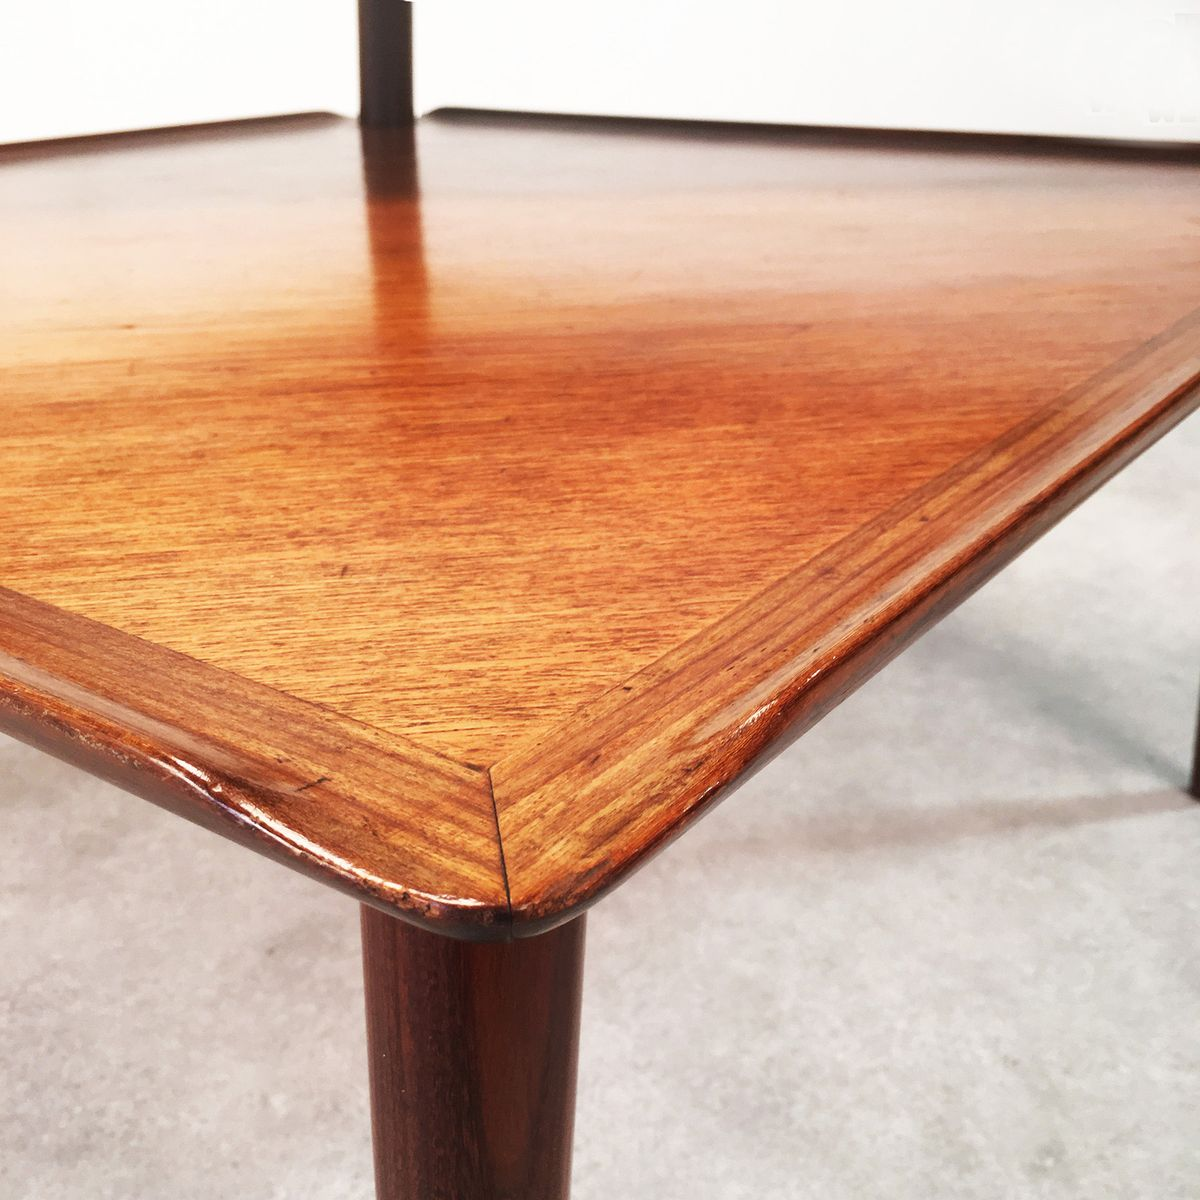 two-tiered teak coffee table, 1950s for sale at pamono